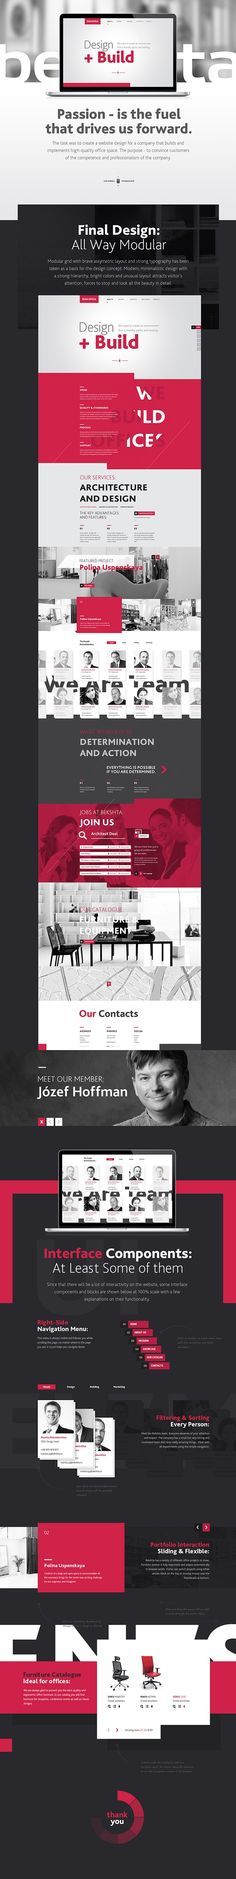 Bekshta Corporate Website - good use of monotone, interesting typography that works in a digital space